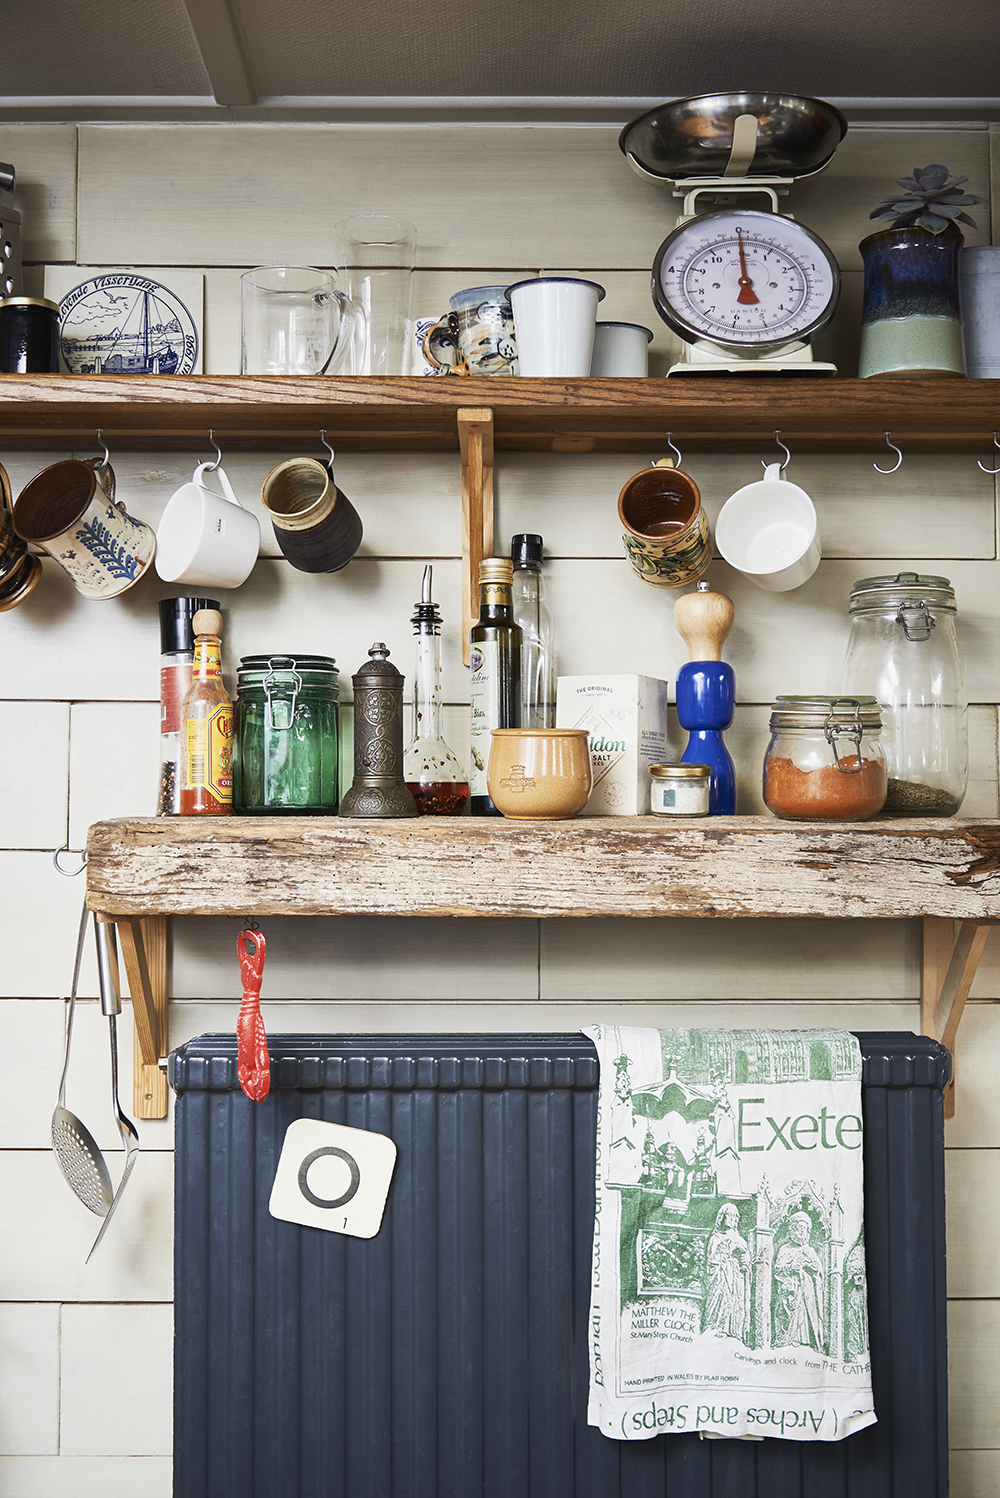 London house boat tour - reclaimed kitchen shelving